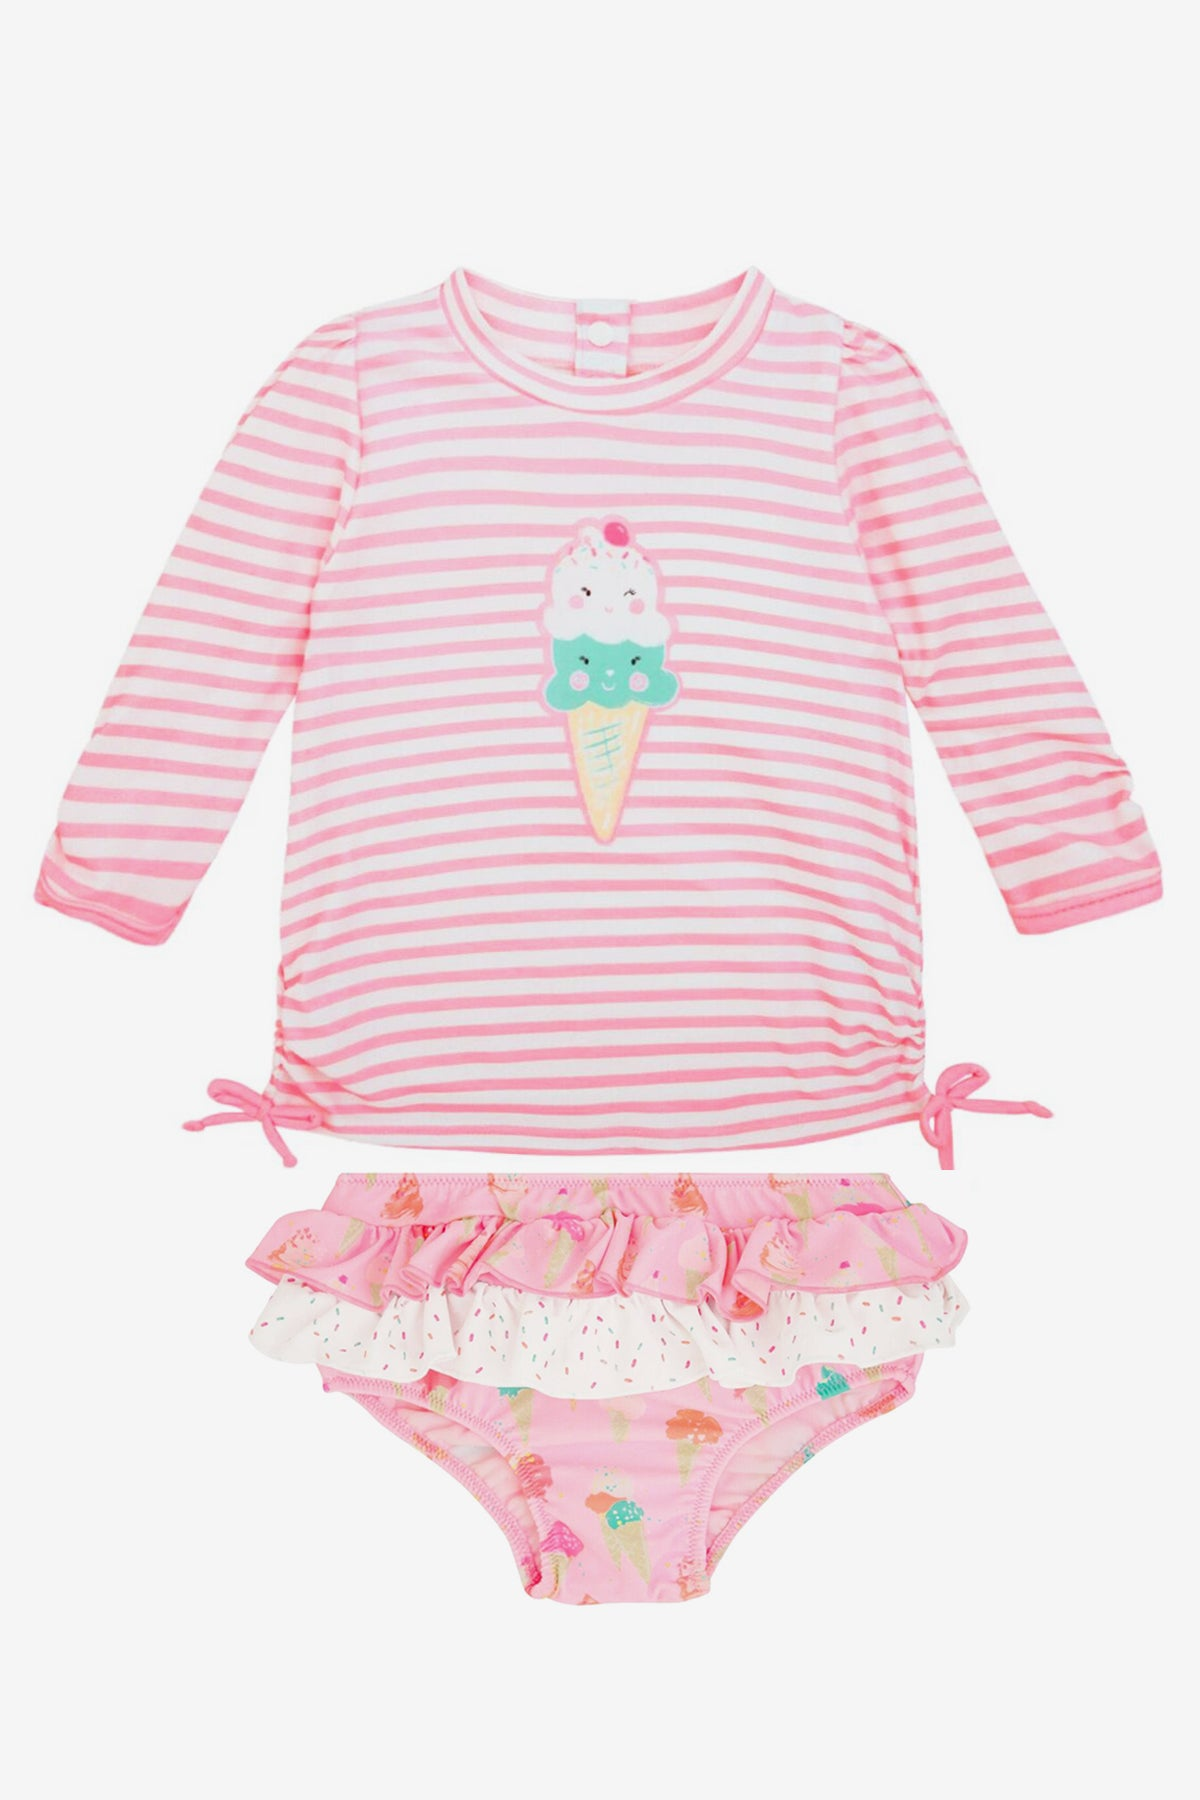 Sunuva Baby Girls Ice Cream Swim Set (Size 18/24M left)